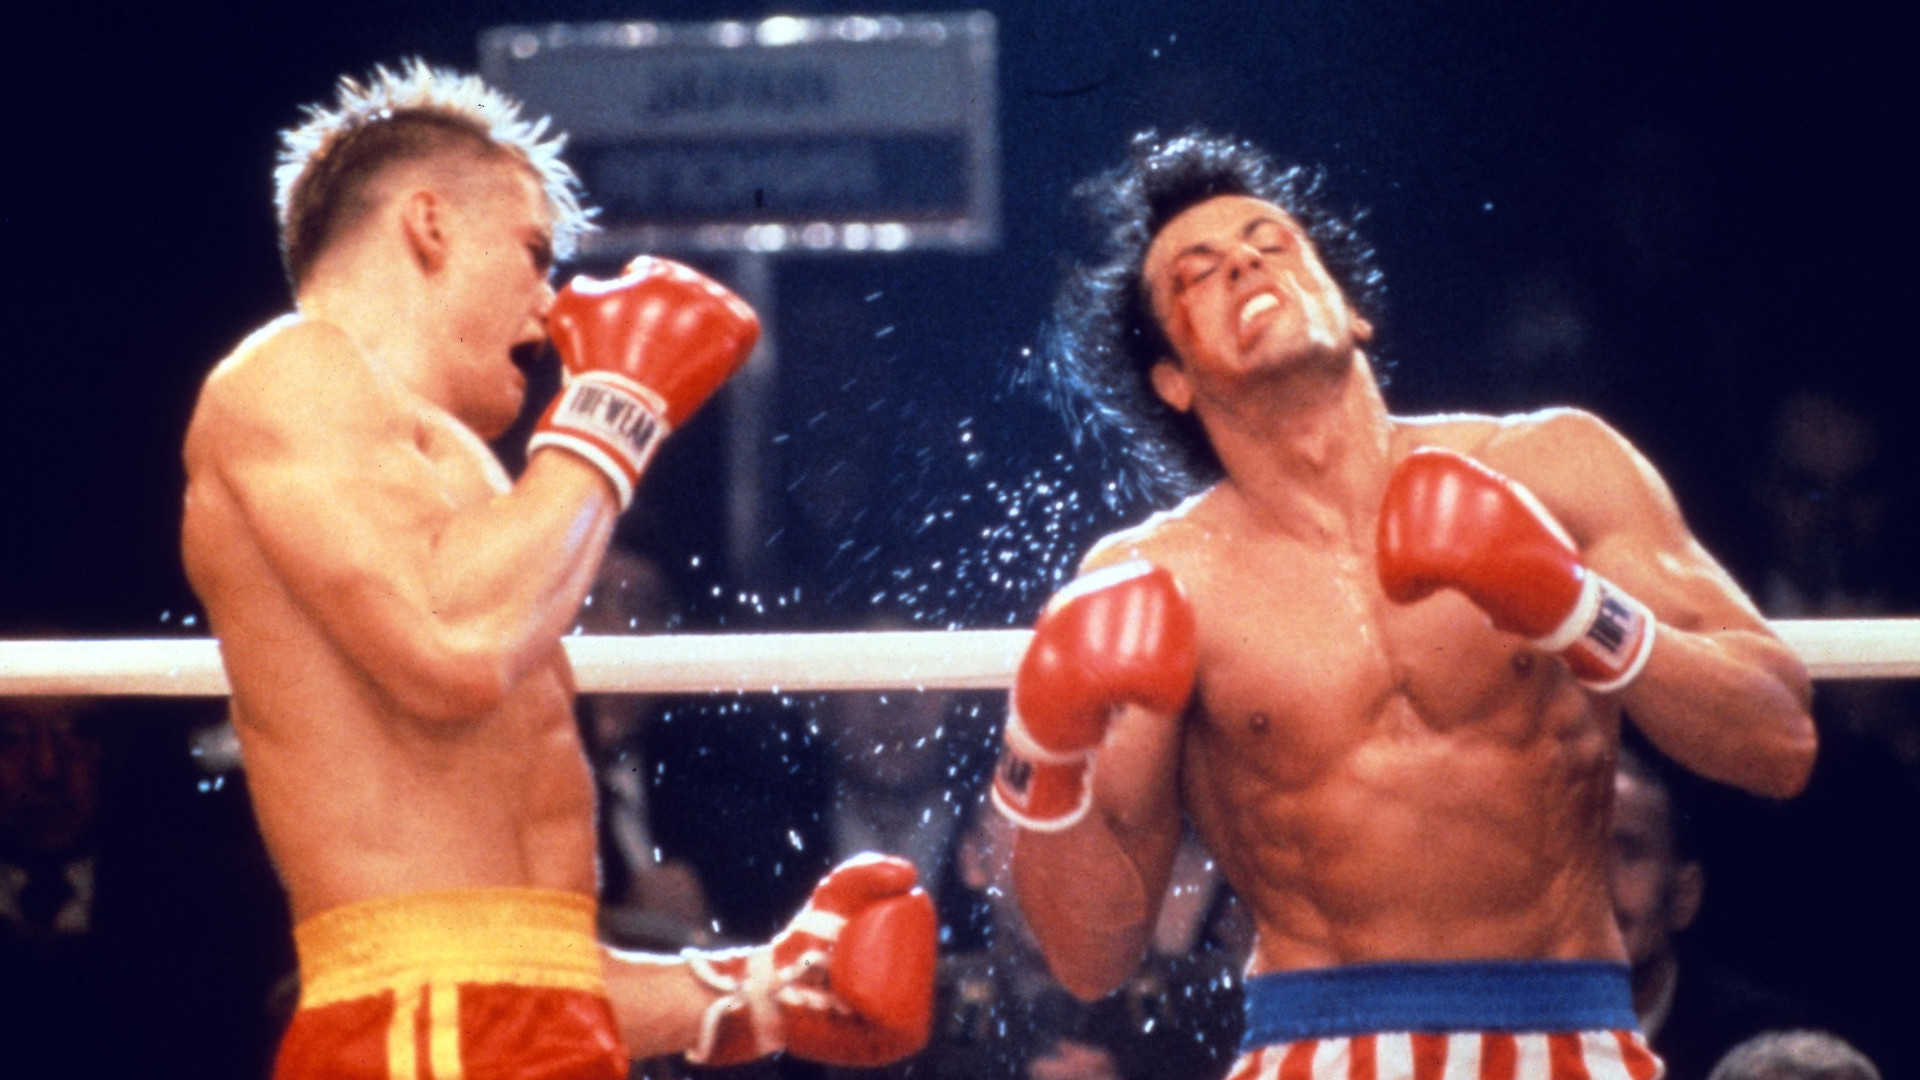 1920x1080 Image result for rocky iv movie pics